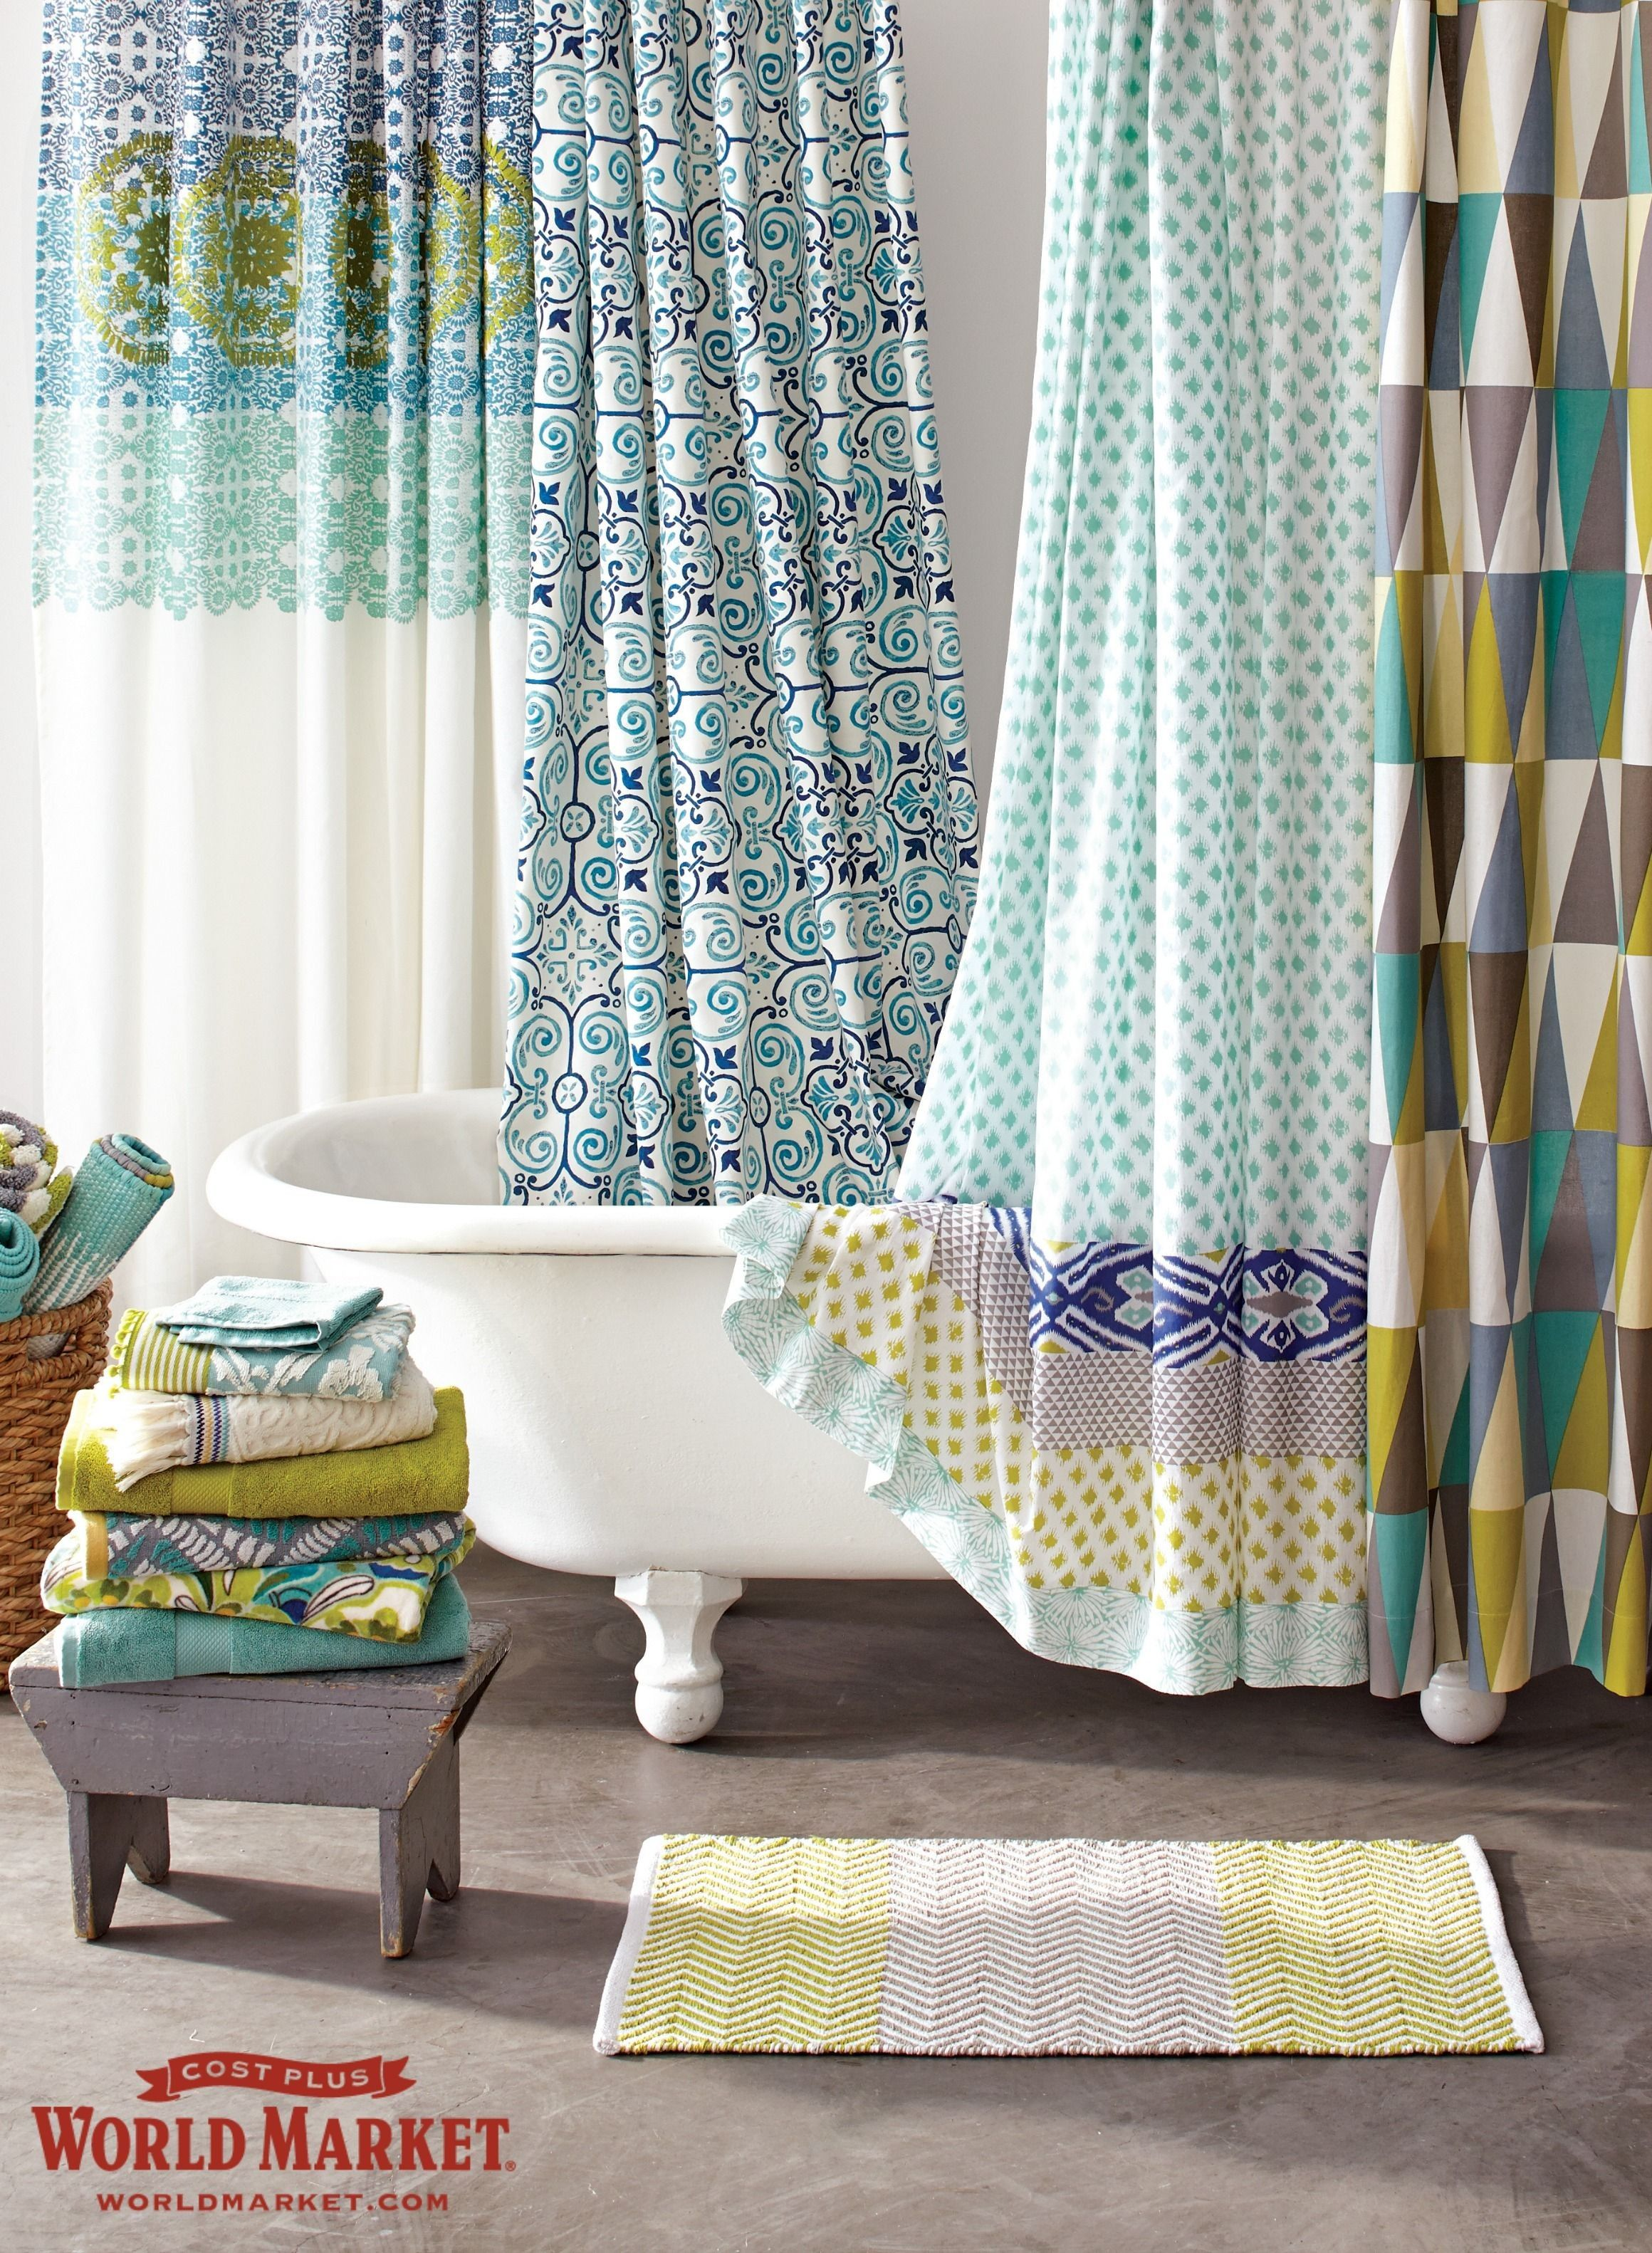 Inspirational Outhouse Shower Curtain Rings Mandi